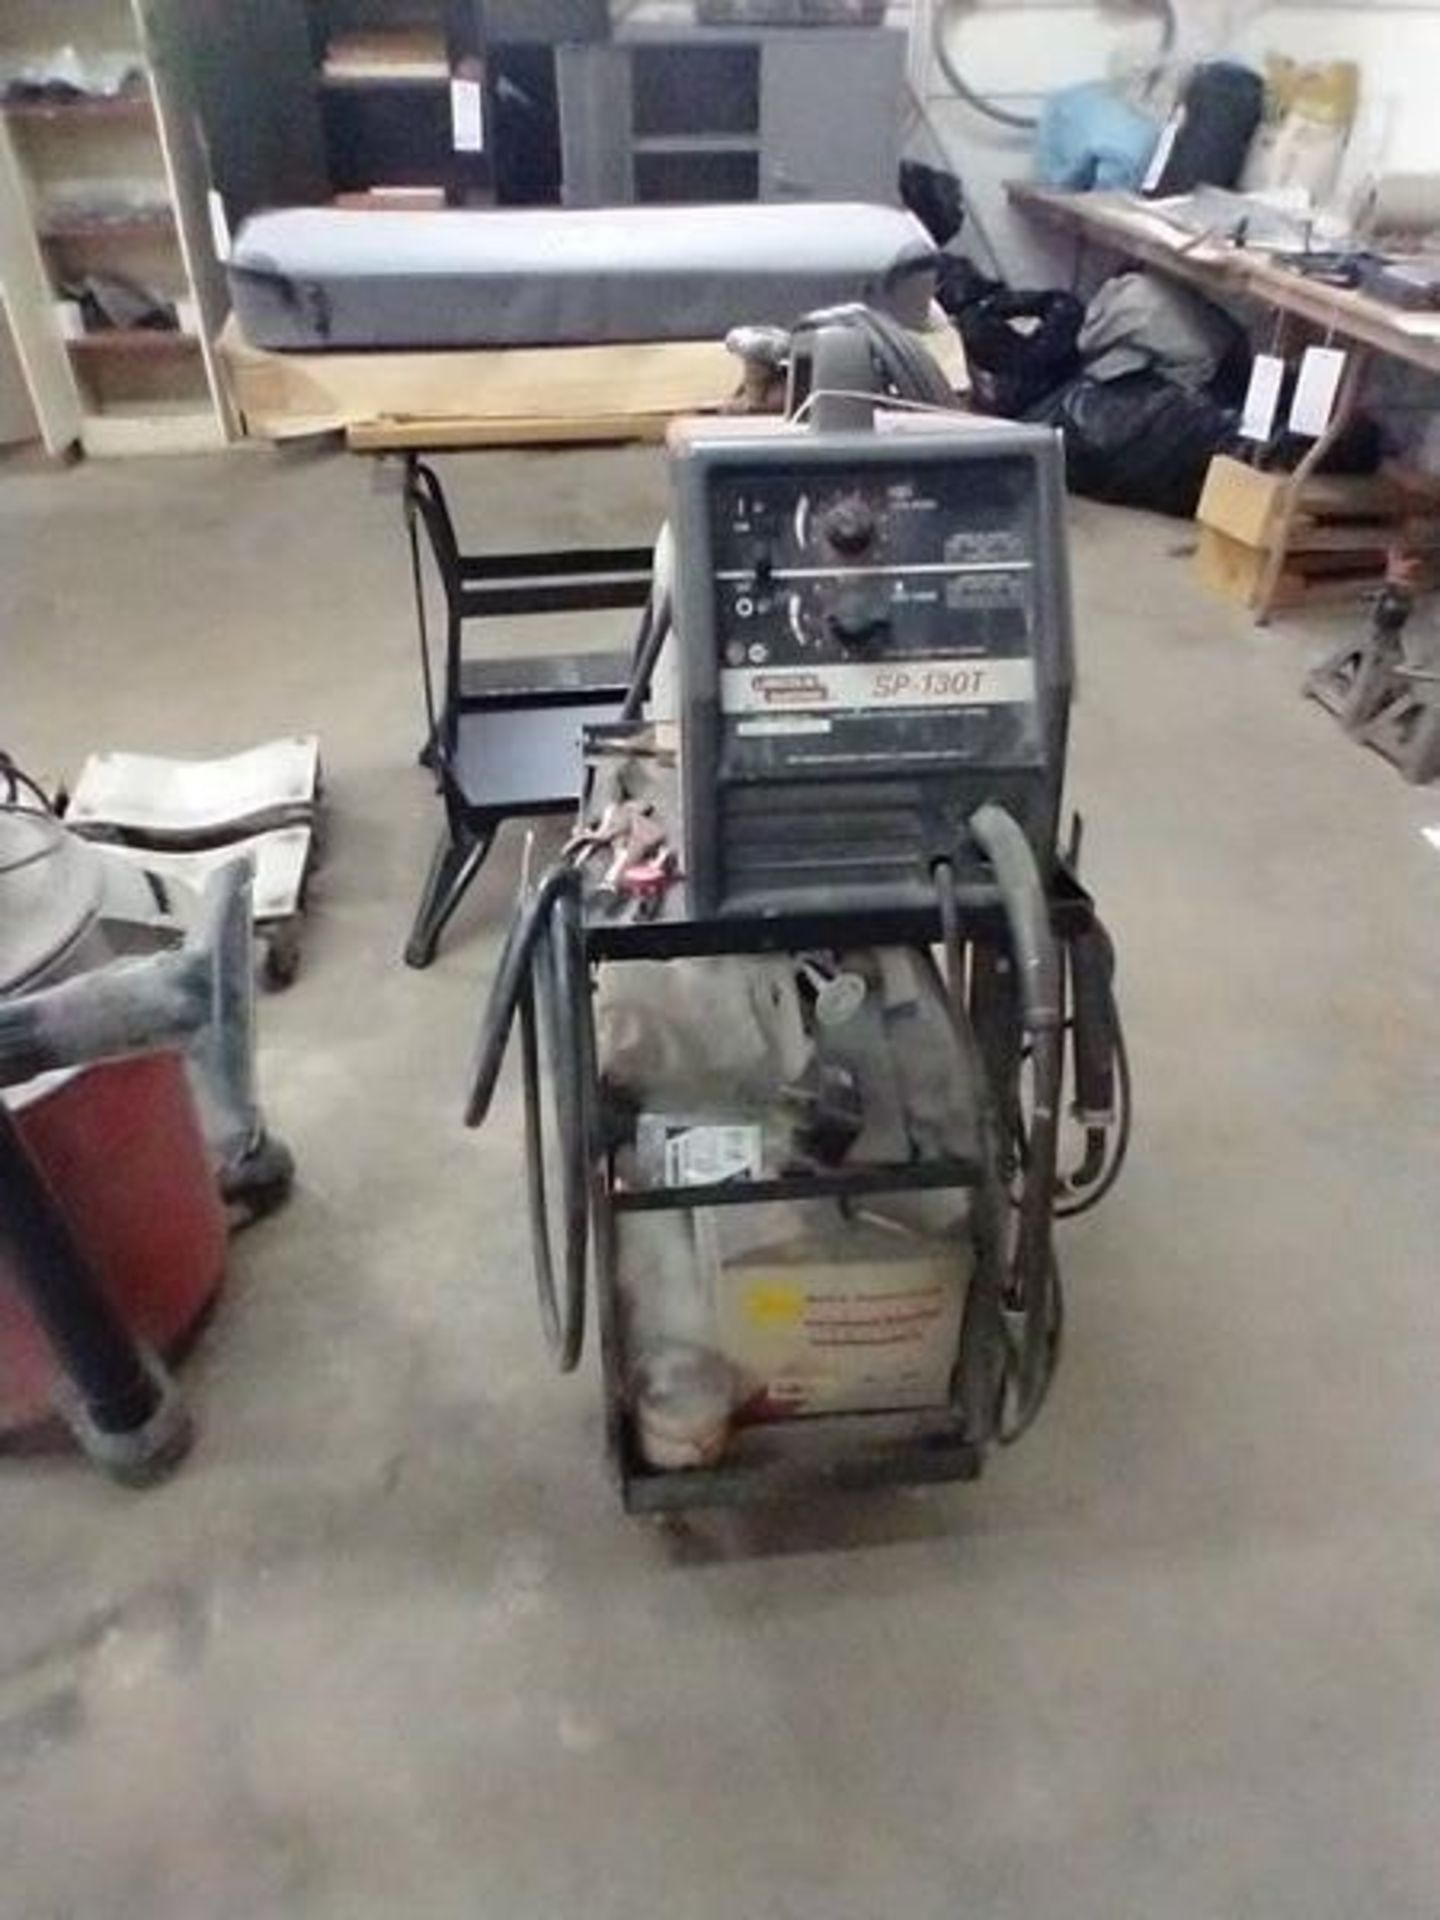 LINCOLN ARC WELDER SP-130T WITH CART AND CONTENTS - Image 2 of 5